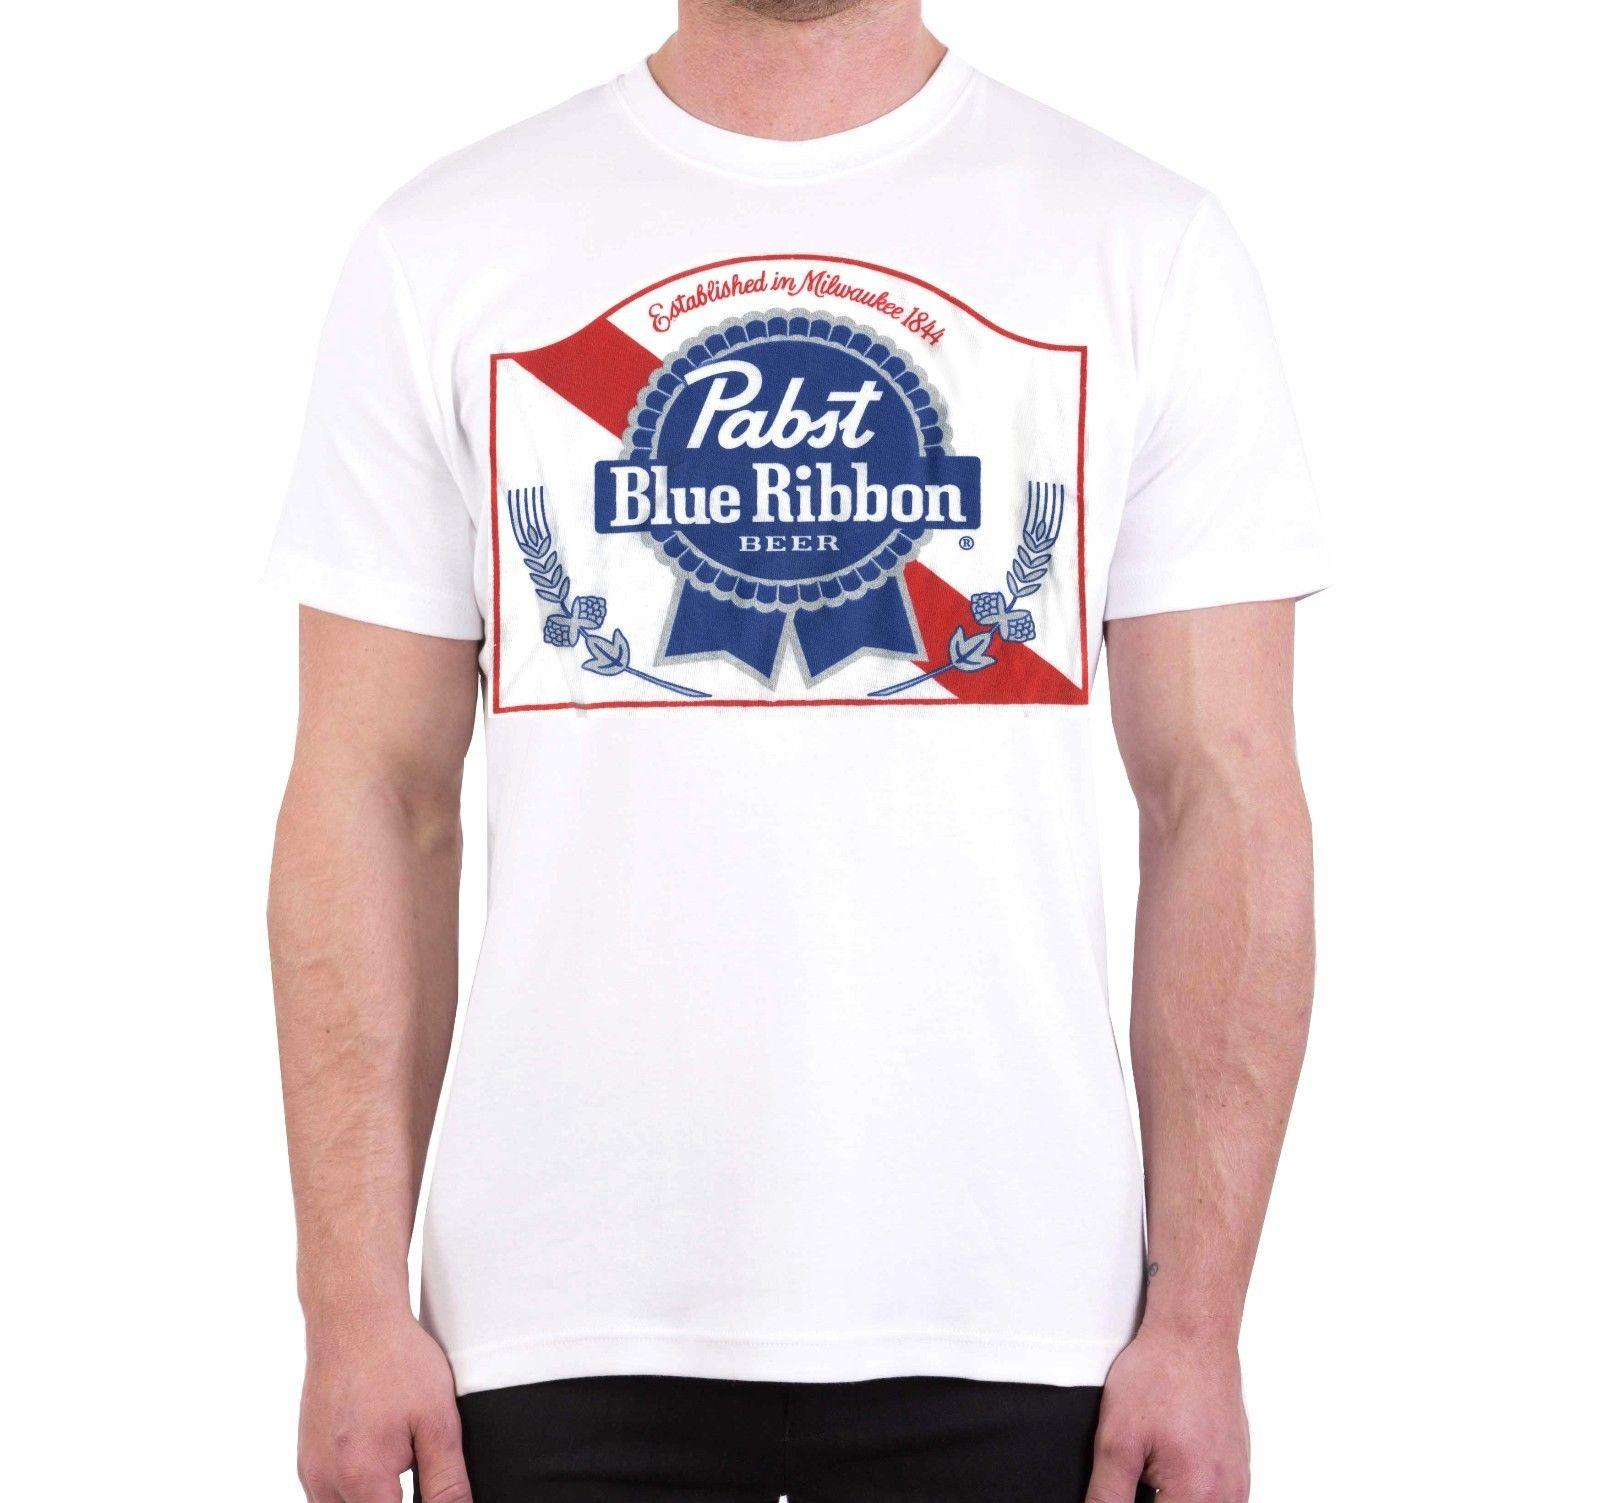 1ada9aa205 Men's t-shirt PBR Old Stock Pabst Blue Ribbon Beer Logo Brewery XL Funny  free shipping Unisex tee